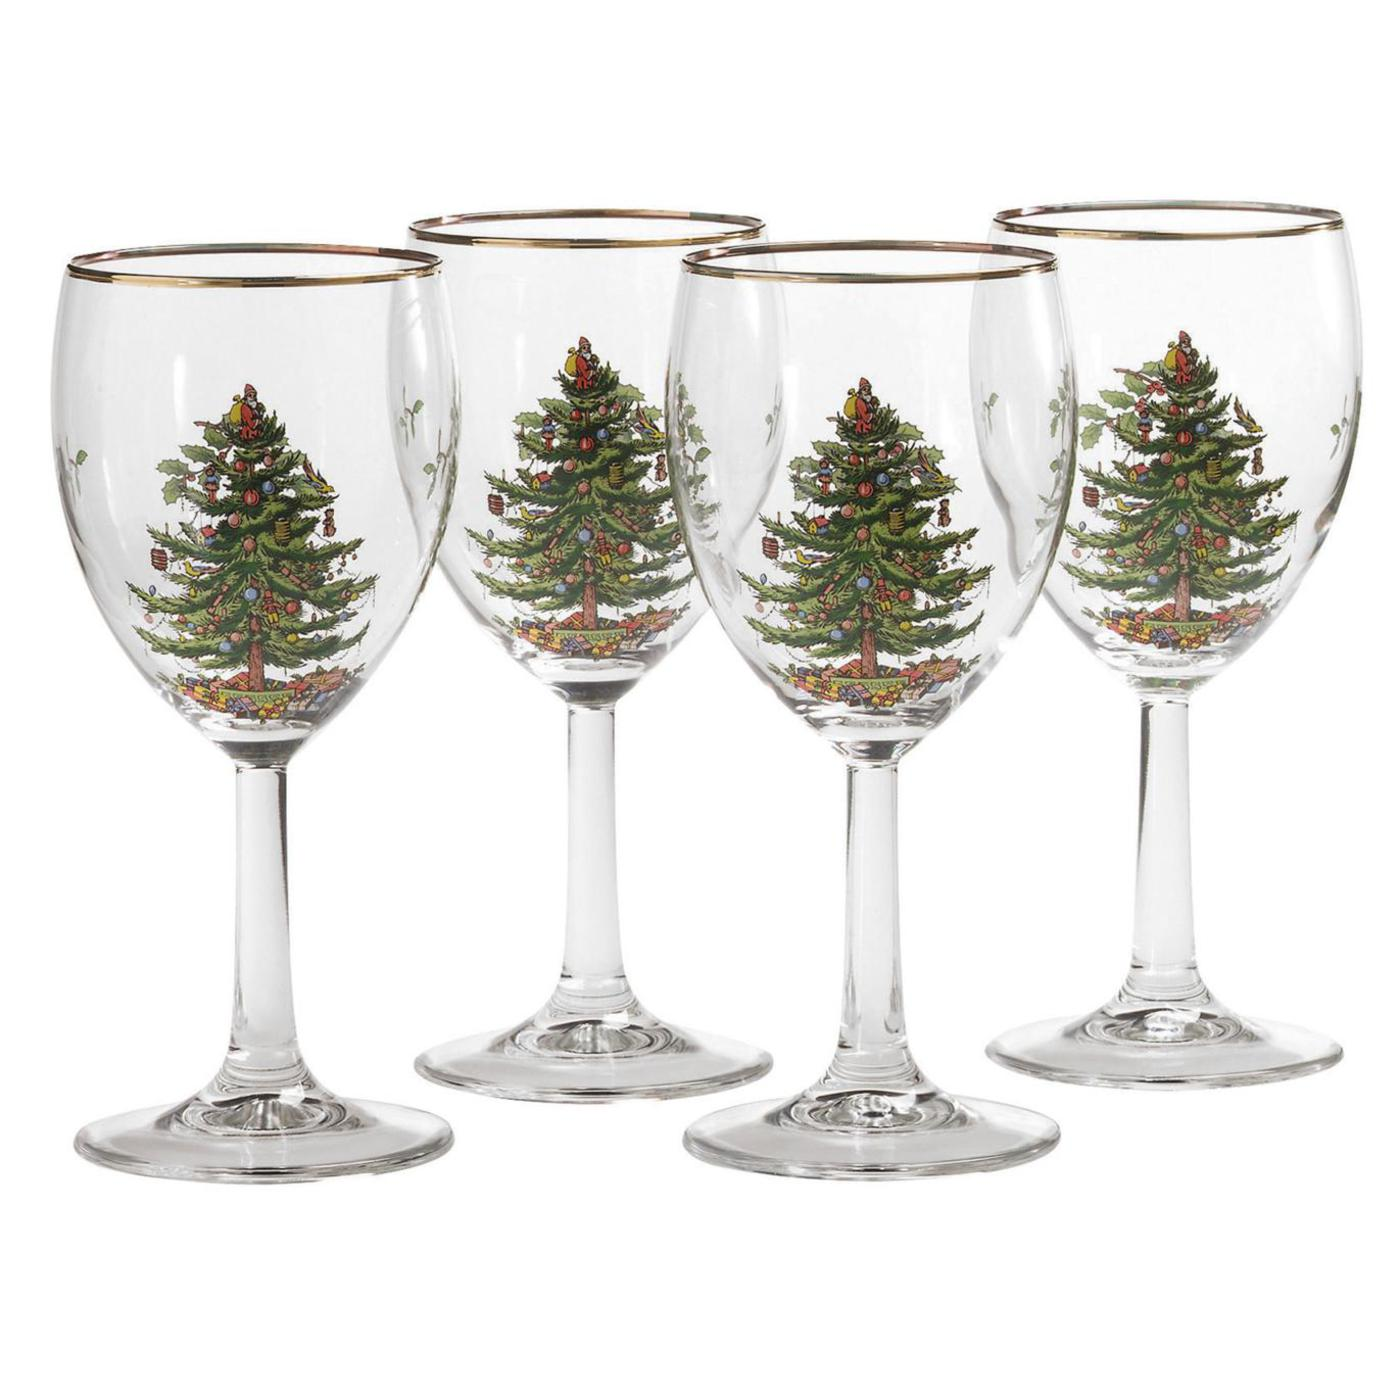 Spode Christmas Tree Set of 4 Wine Glasses image number 0